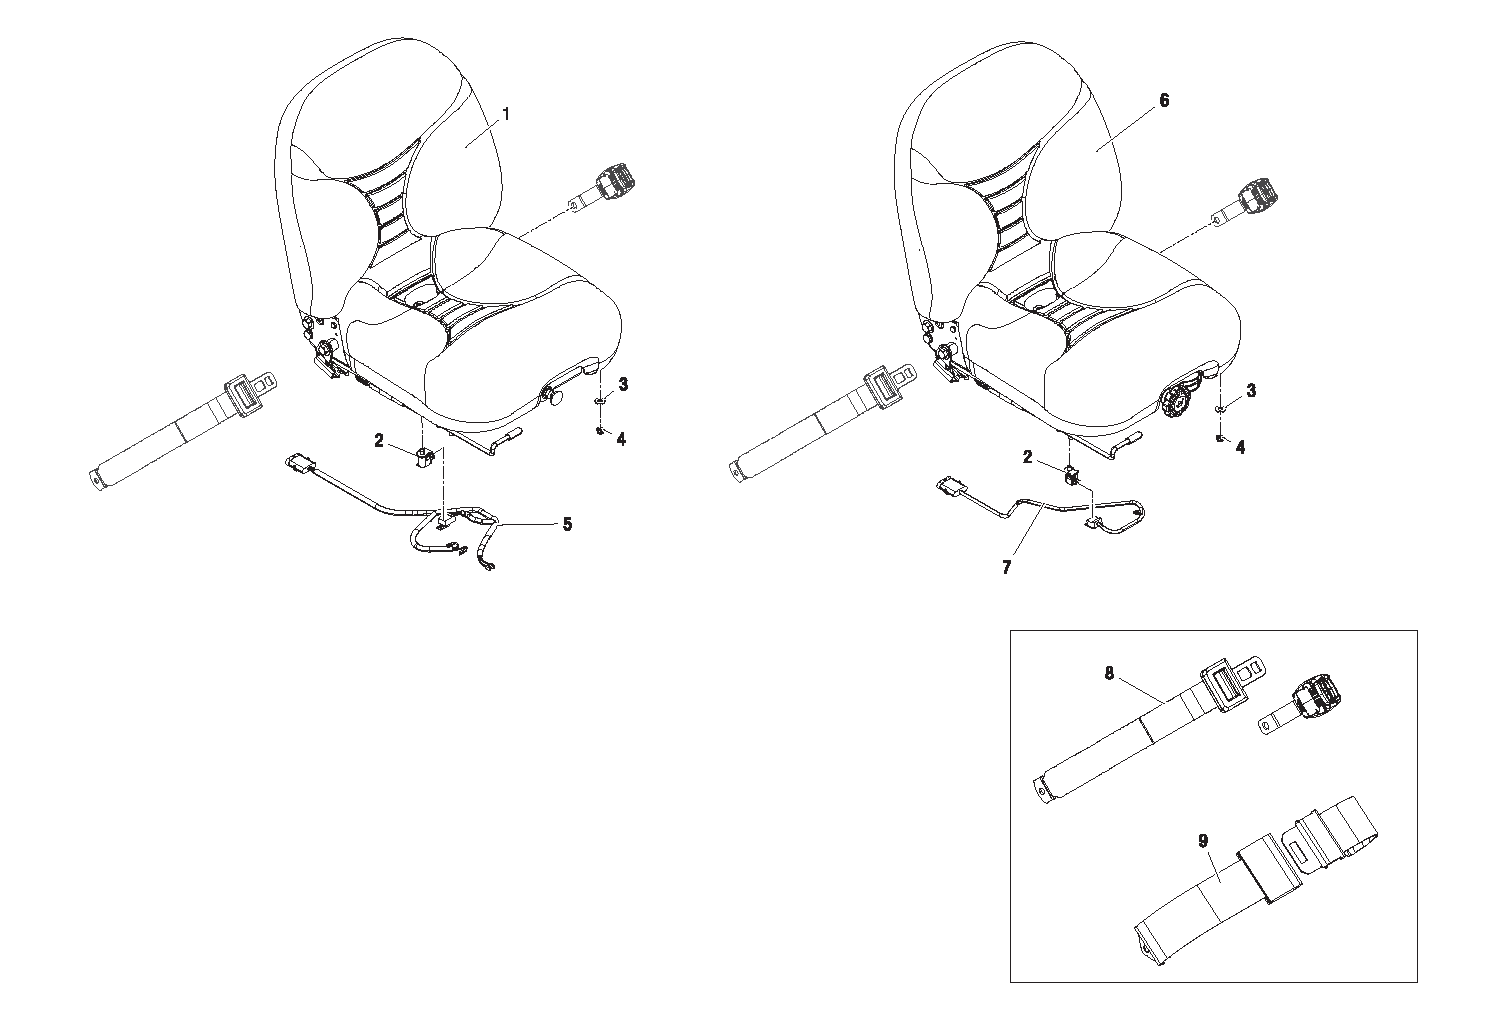 Diagram 11-1A Seat and Seatbelt Options